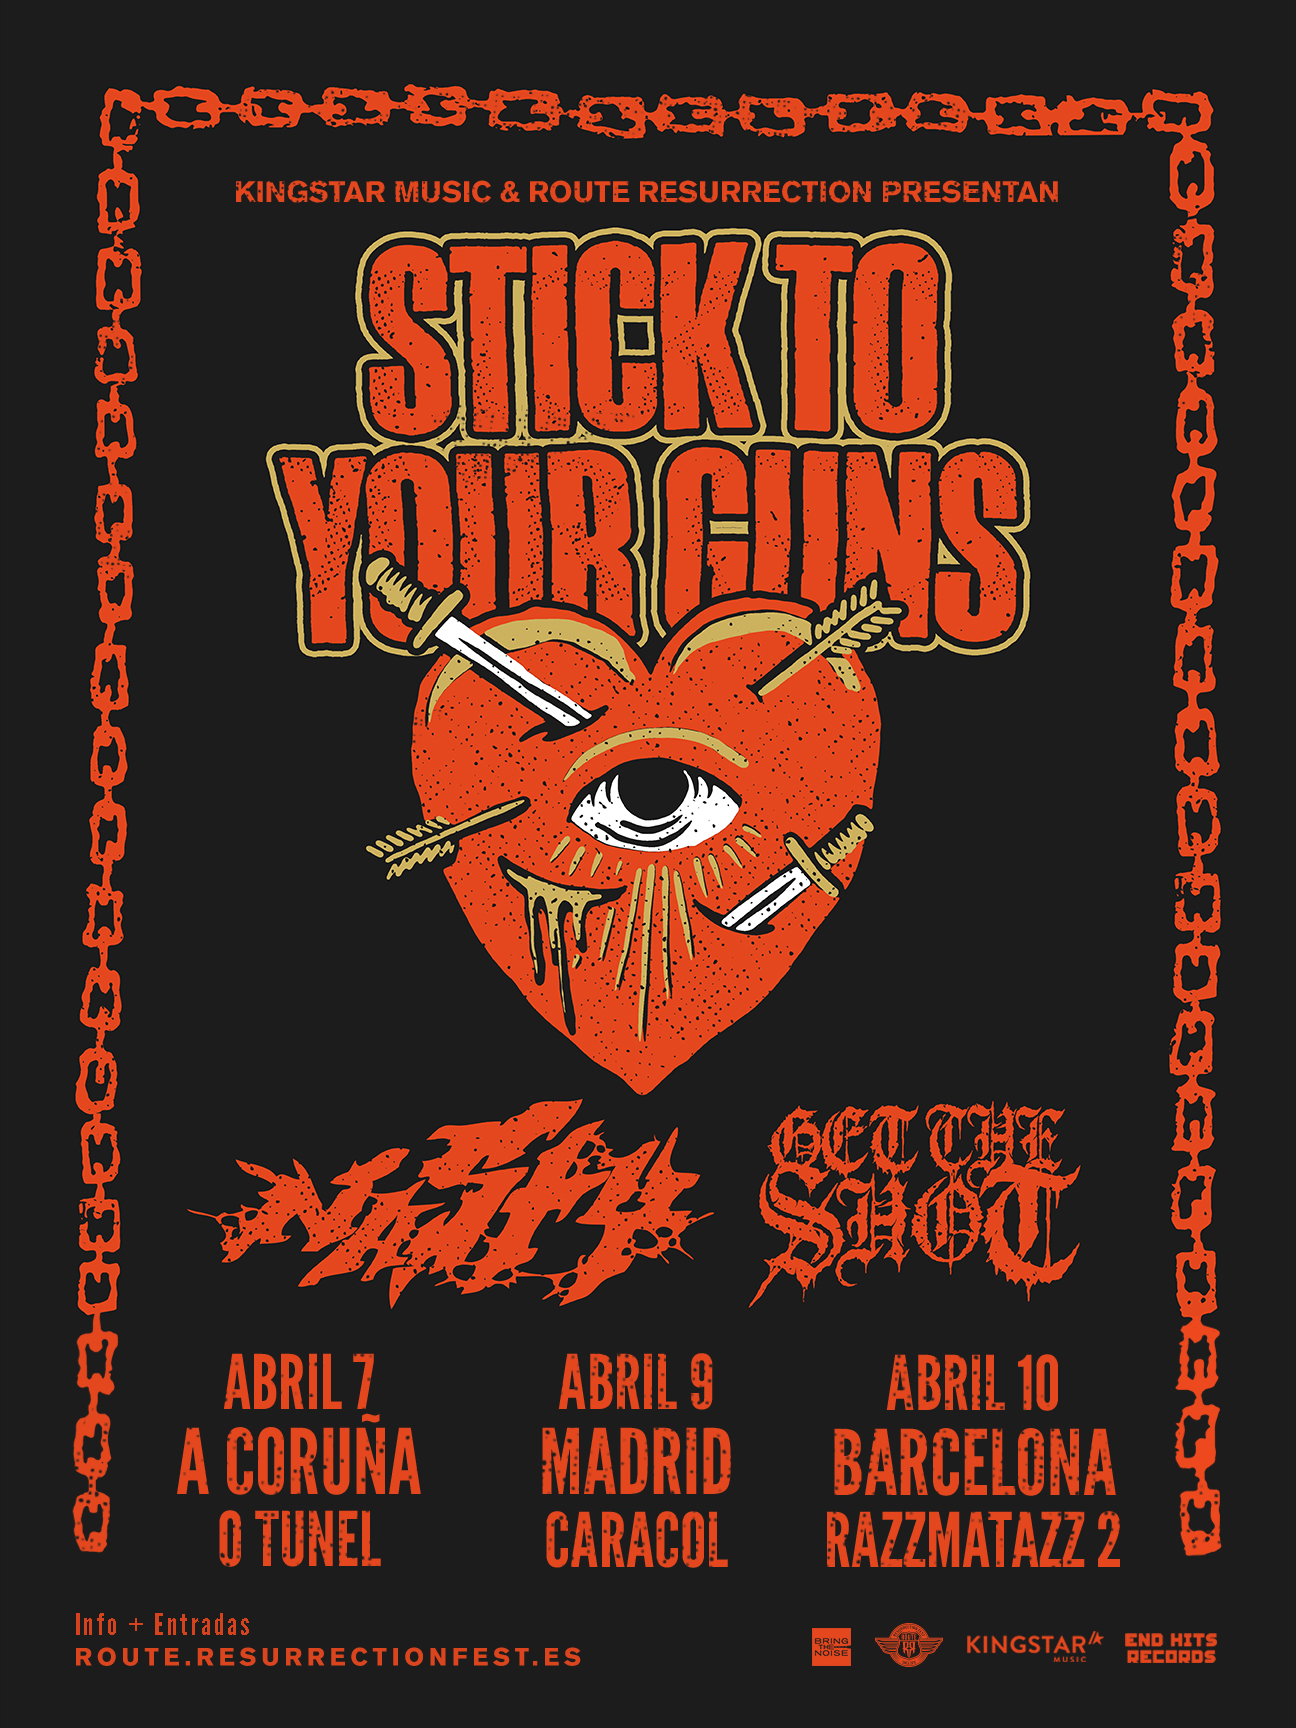 Route Resurrection 2019: Stick To Your Guns (Barcelona)